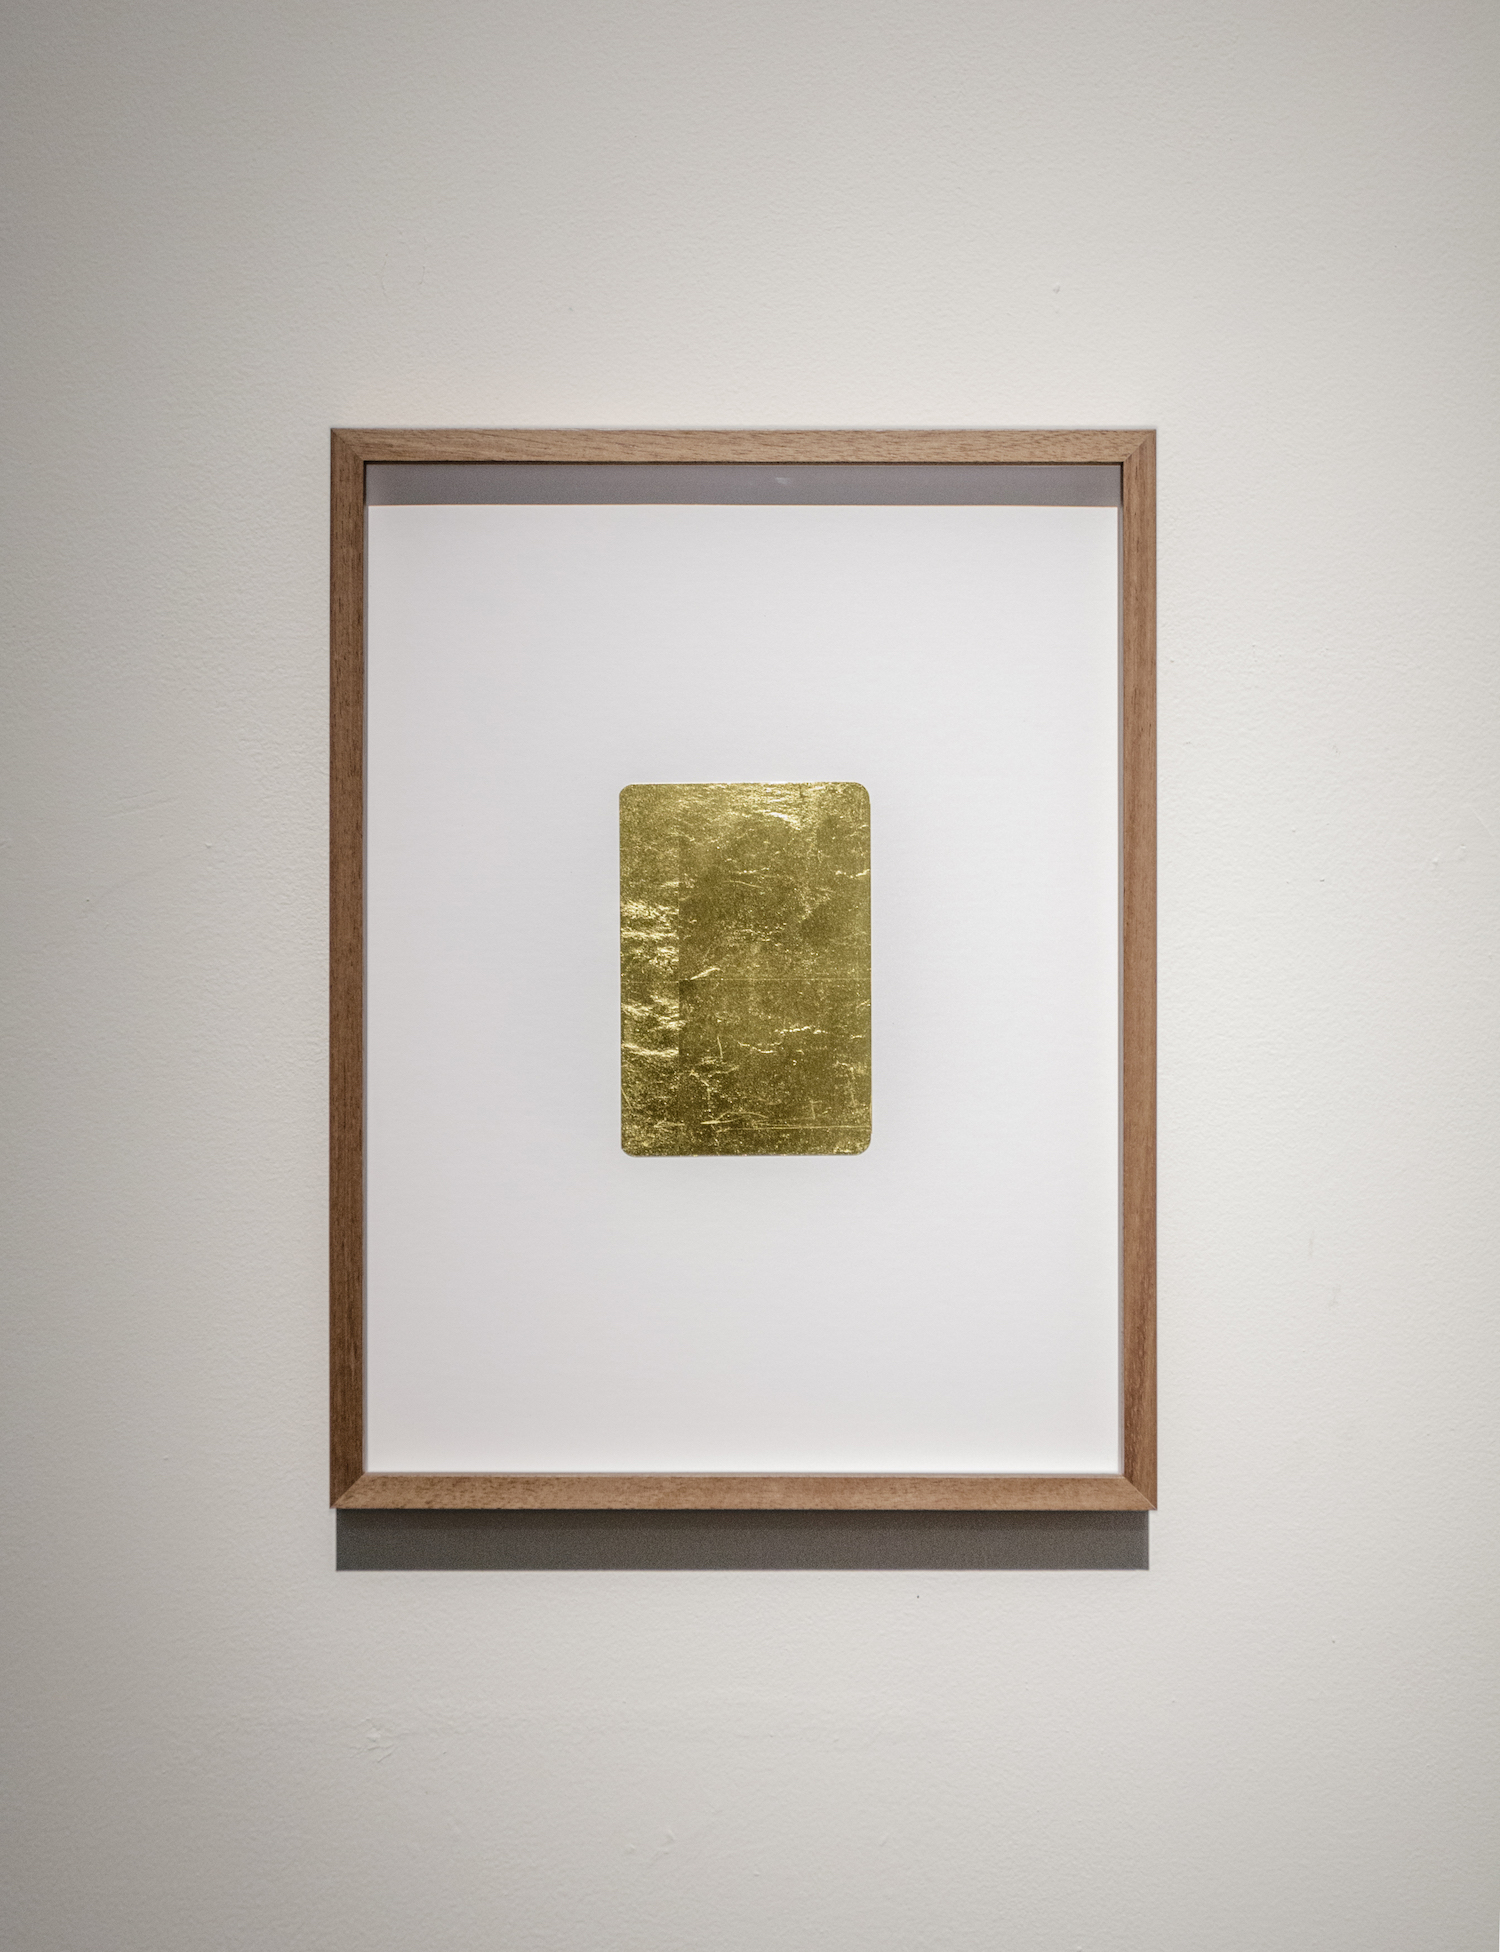 Stéphanie Saadé  Golden Memories 2015-2019 Old photograph, 24-carat gold leaf 15 x 10 cm A photograph from the artist's childhood is covered with gold leaf. The past memory is no longer accessible, but now mirrors the present reality